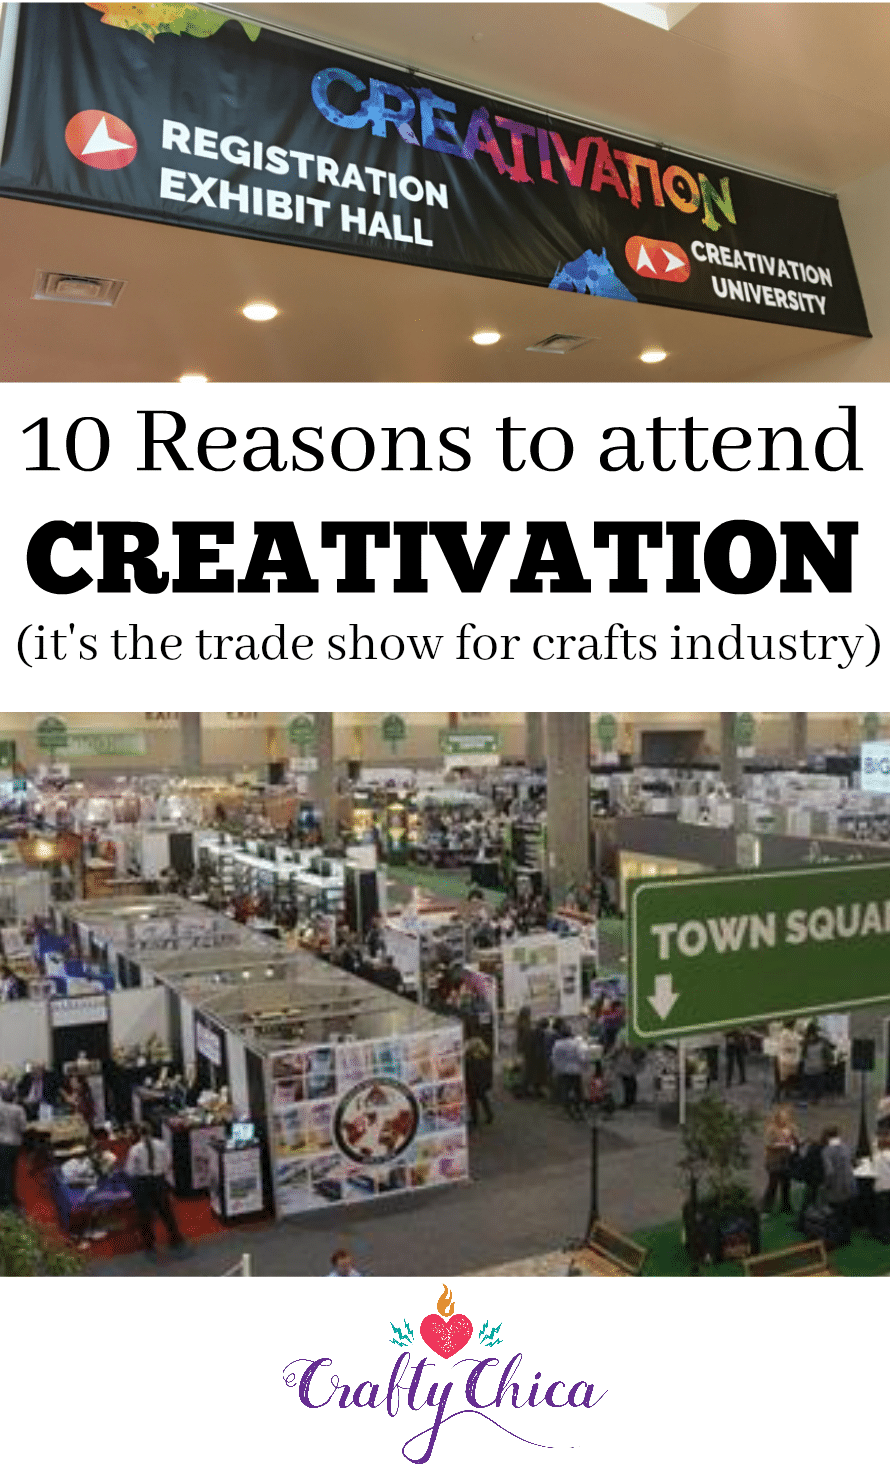 10 Reasons To Attend Creativation The Crafty Chica How Install An Afci Outlet Plus We Make Stuff Explode Home Are You Artist Or Crafter Looking Money With Your Creations Beyond Vending At Shows Need Read This Post About